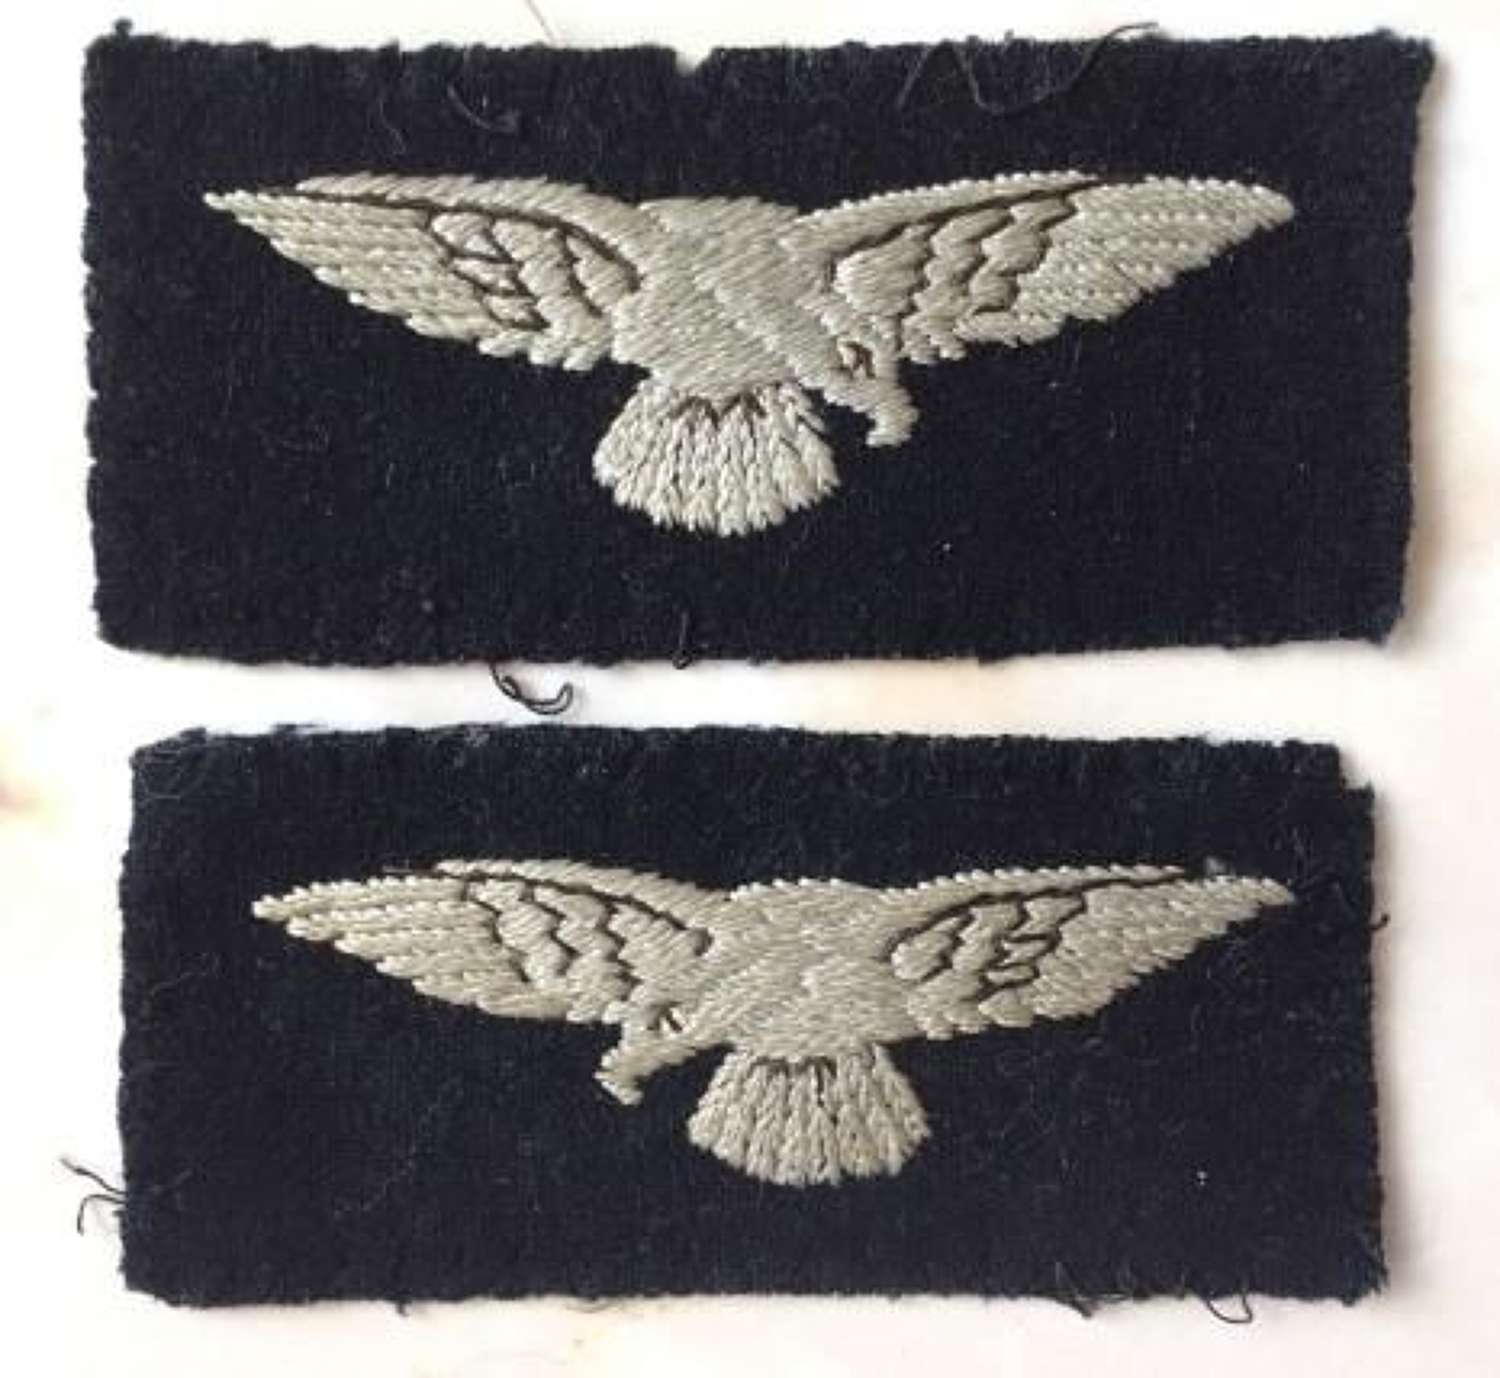 Original Early Battle of Britain Period RAF Albatross Insignia